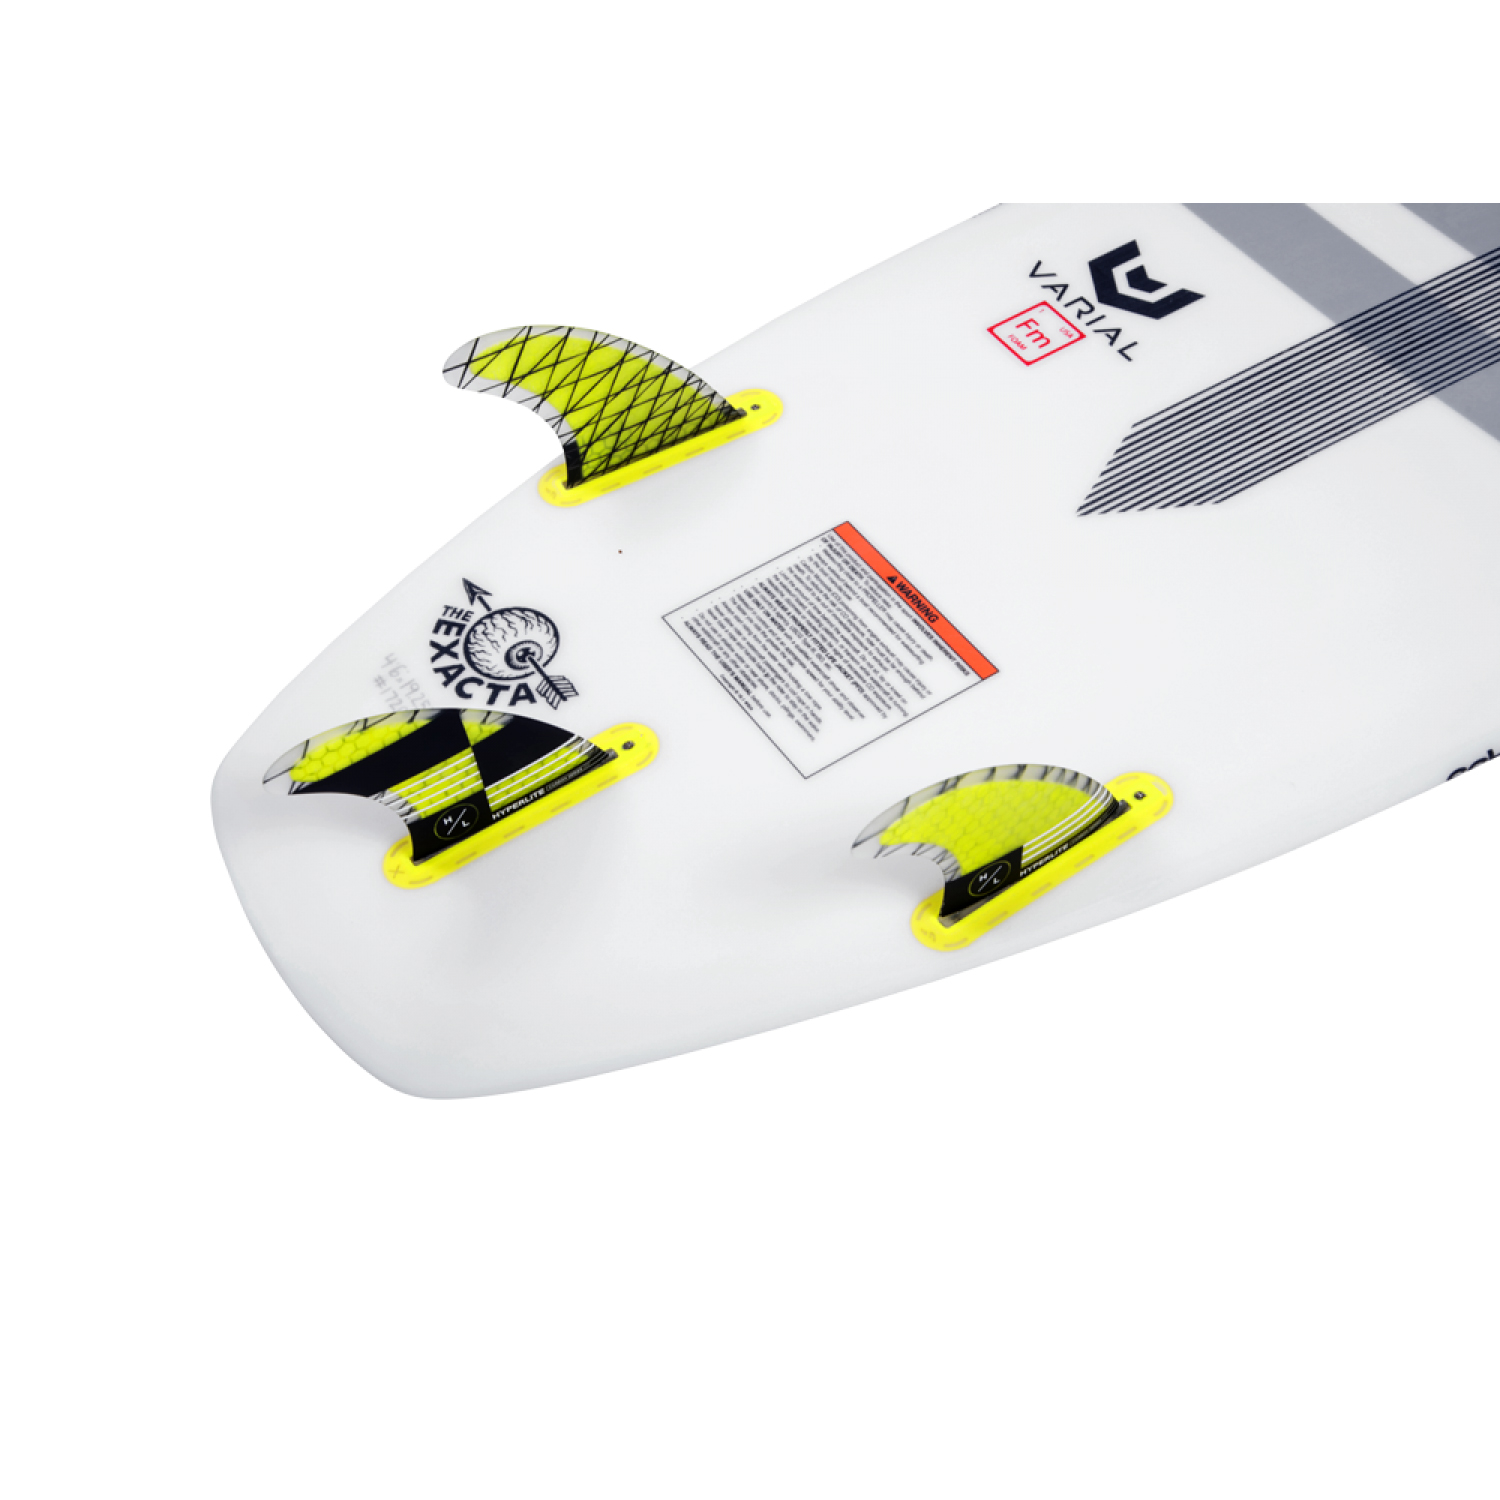 4.5'' CARBON SURF FIN SET W/ KEY HYPERLITE 2018